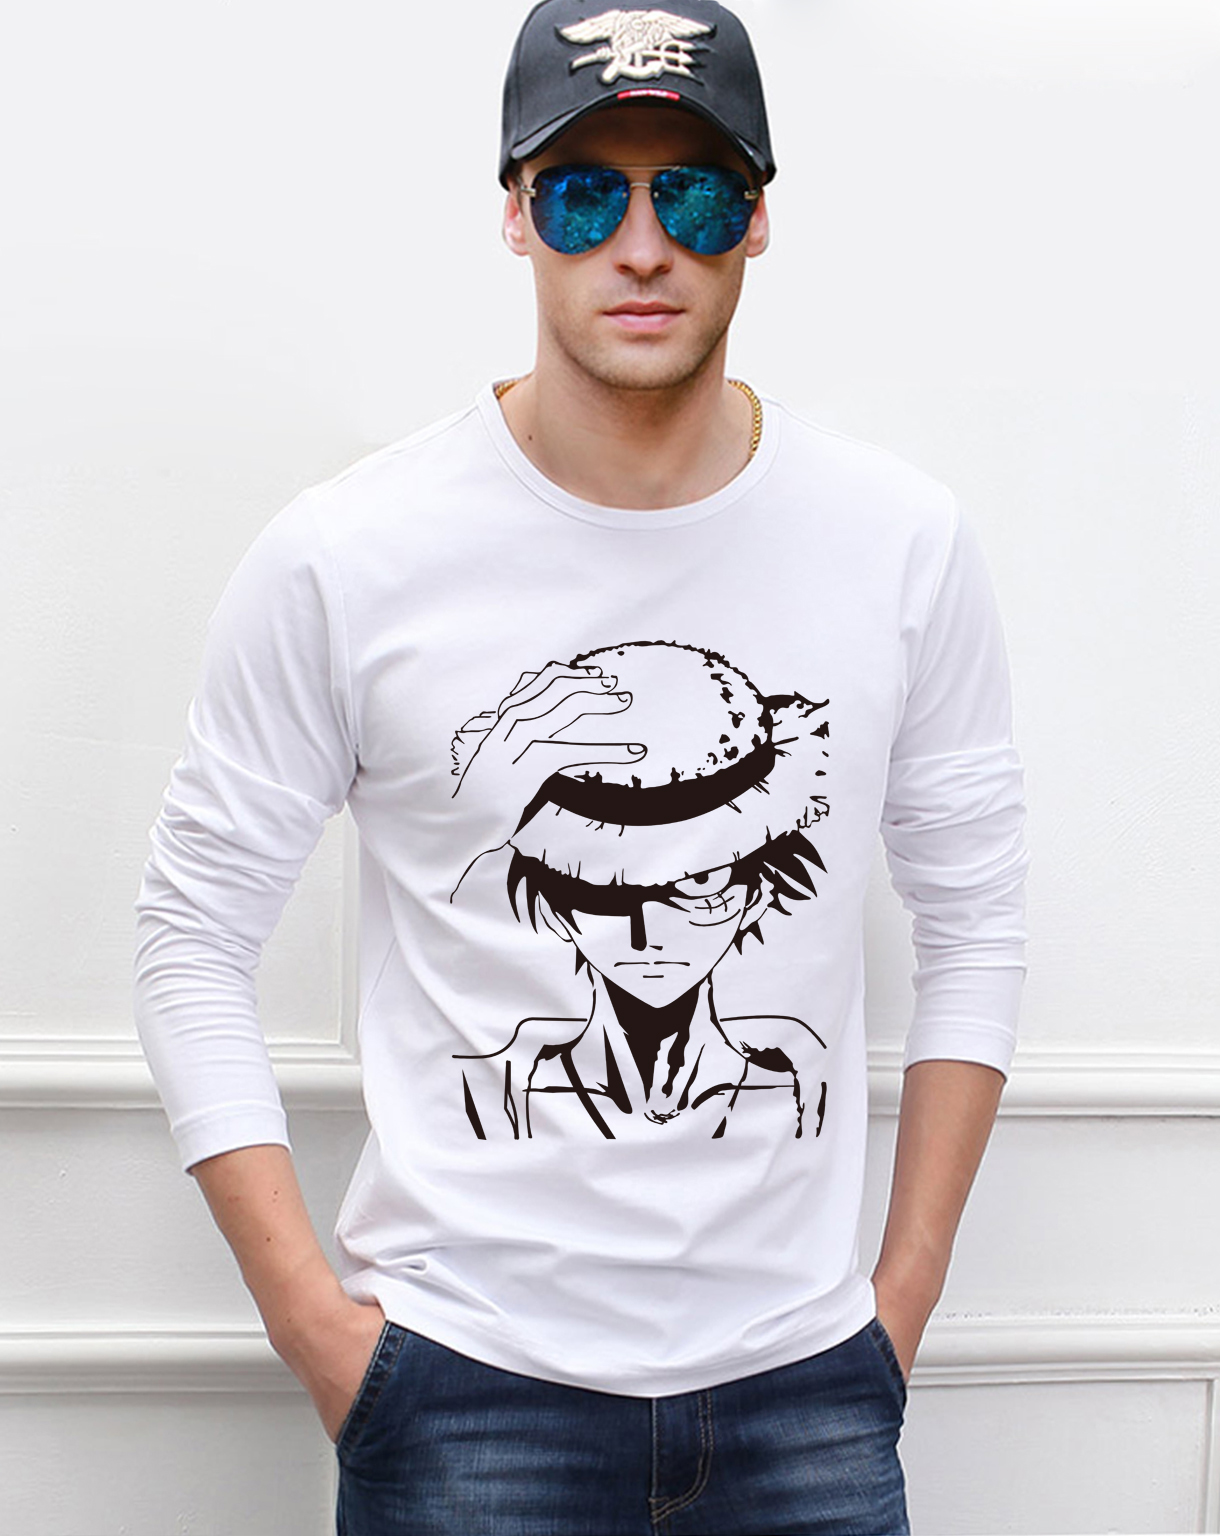 Anime One Piece Luffy men's long sleeve t-shirts 2019 spring new 100% cotton casual harajuku men t shirt cartoon tshirt for fans